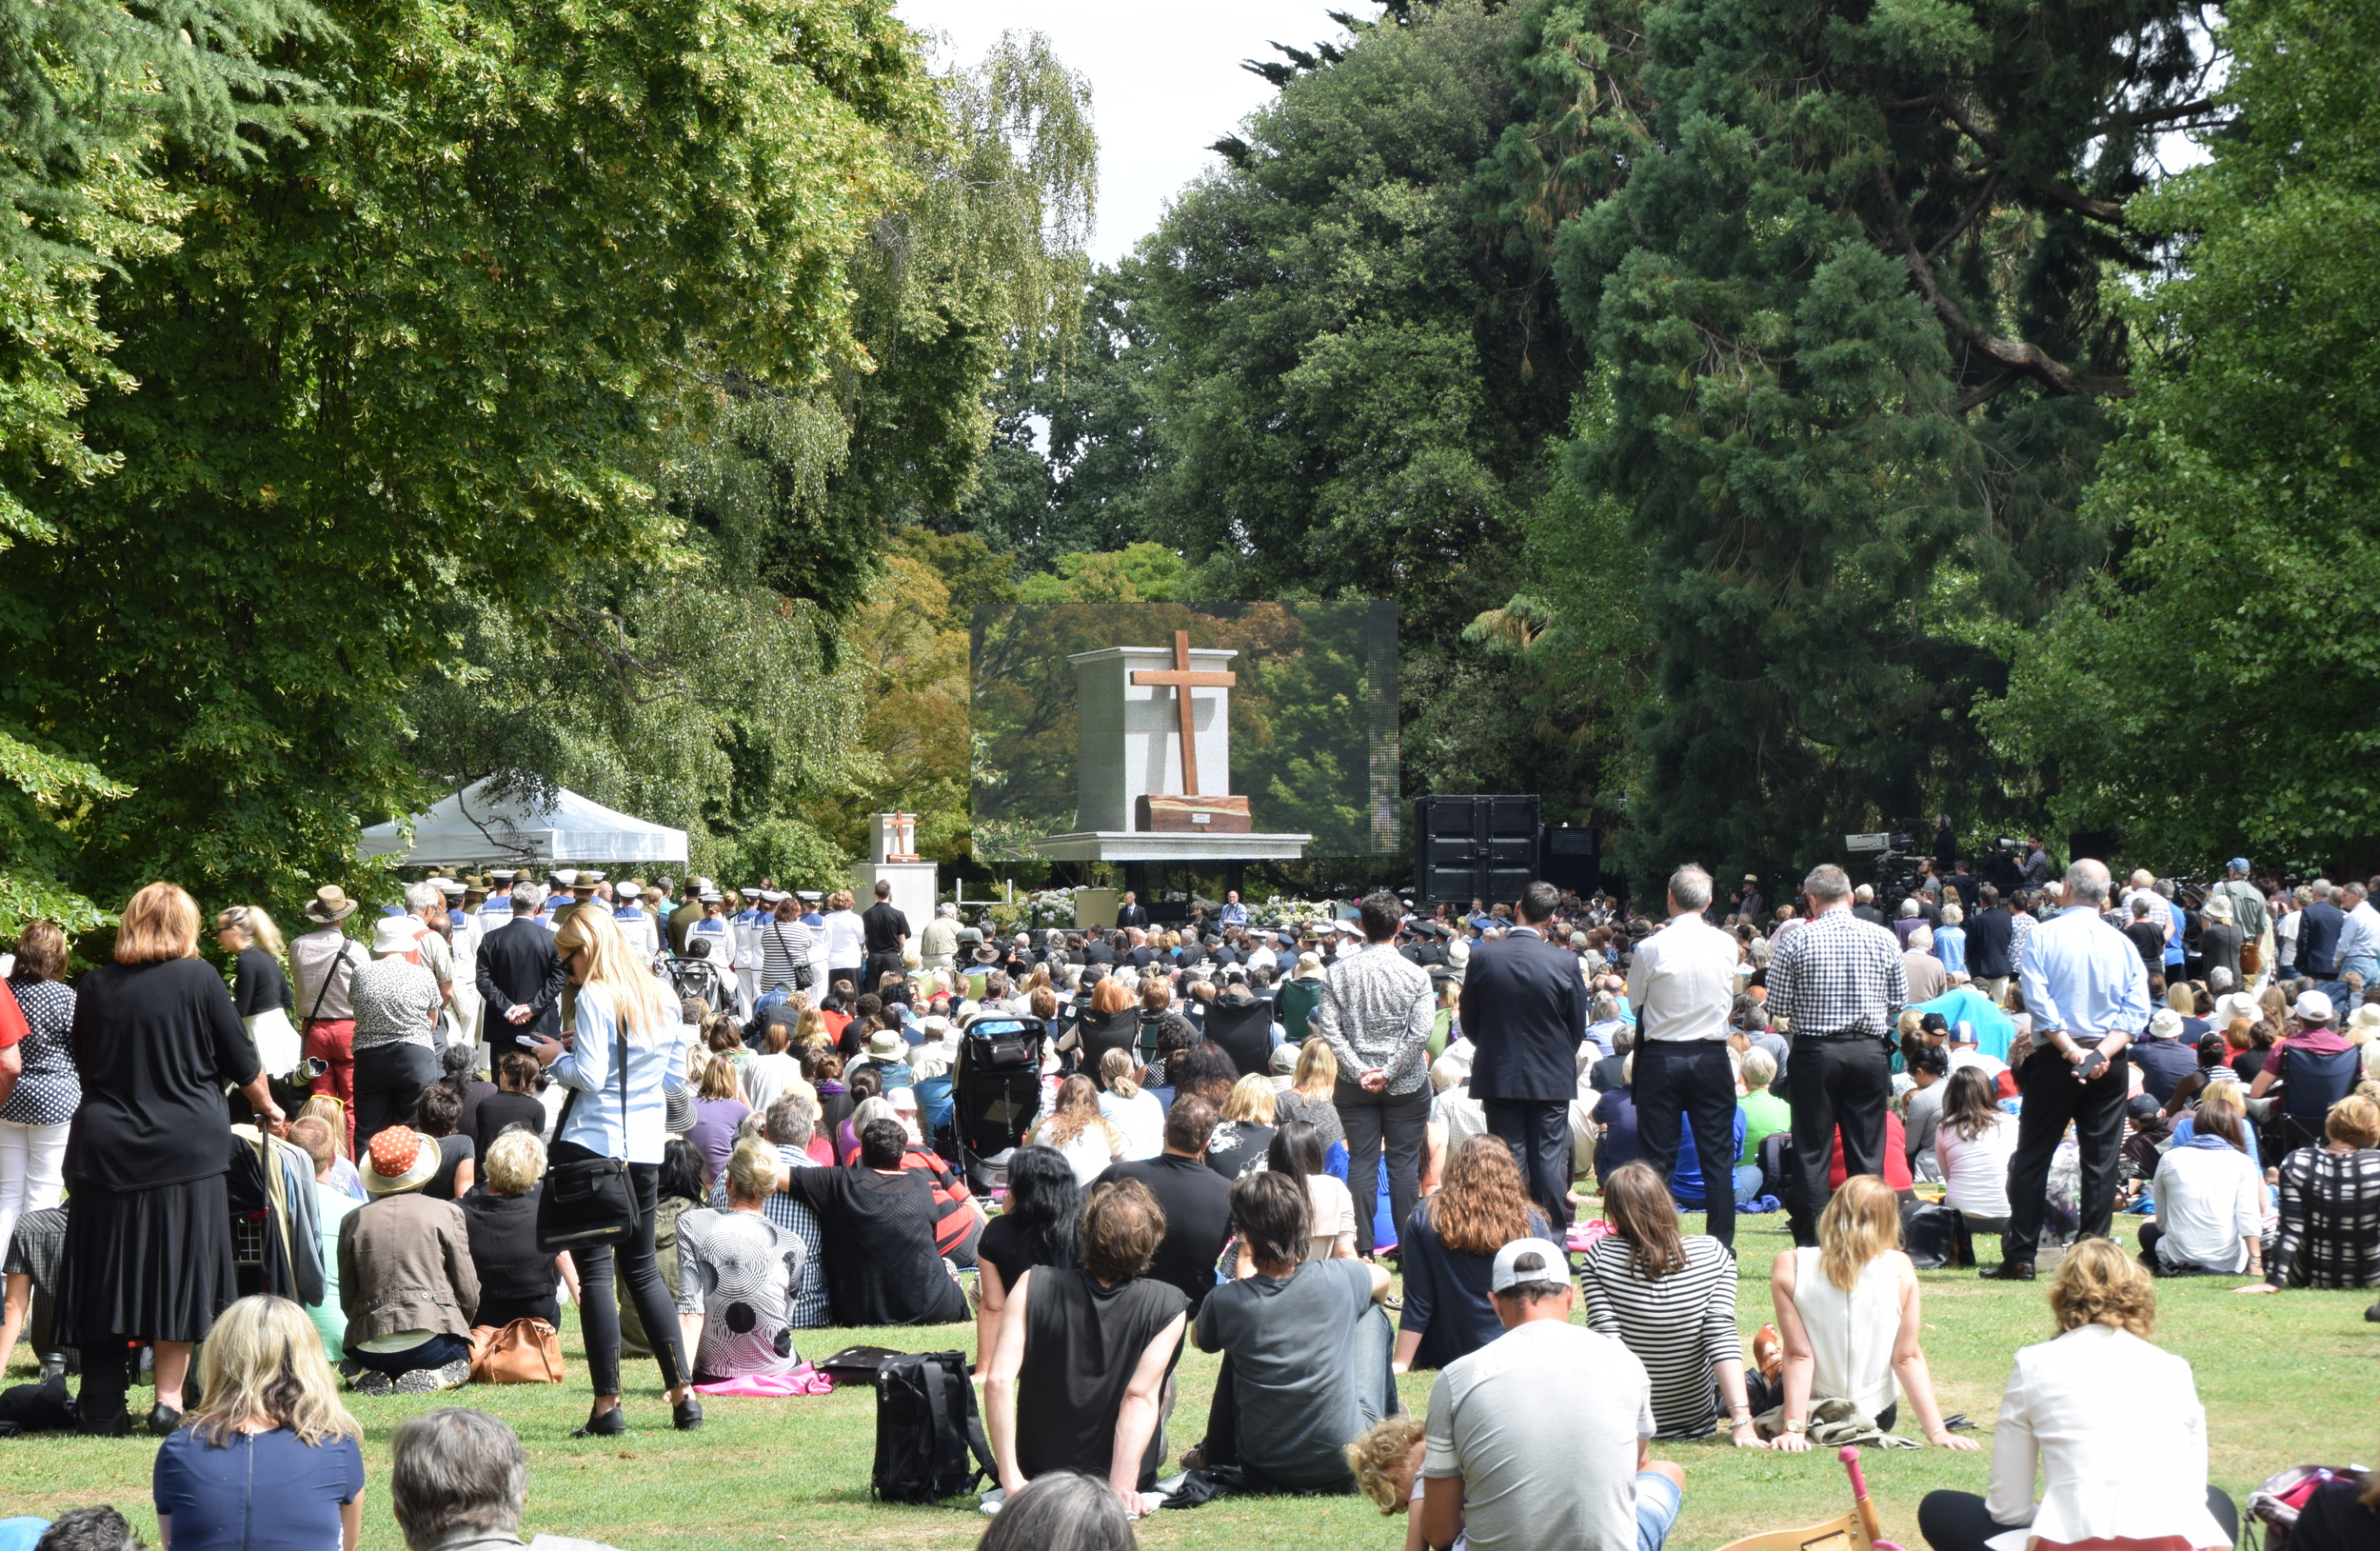 Gathering at the Civic Memorial Service held at midday on Monday, February 22, to mark the fifth anniversary of the 2011 earthquake in Christchurch's Botanical Gardens